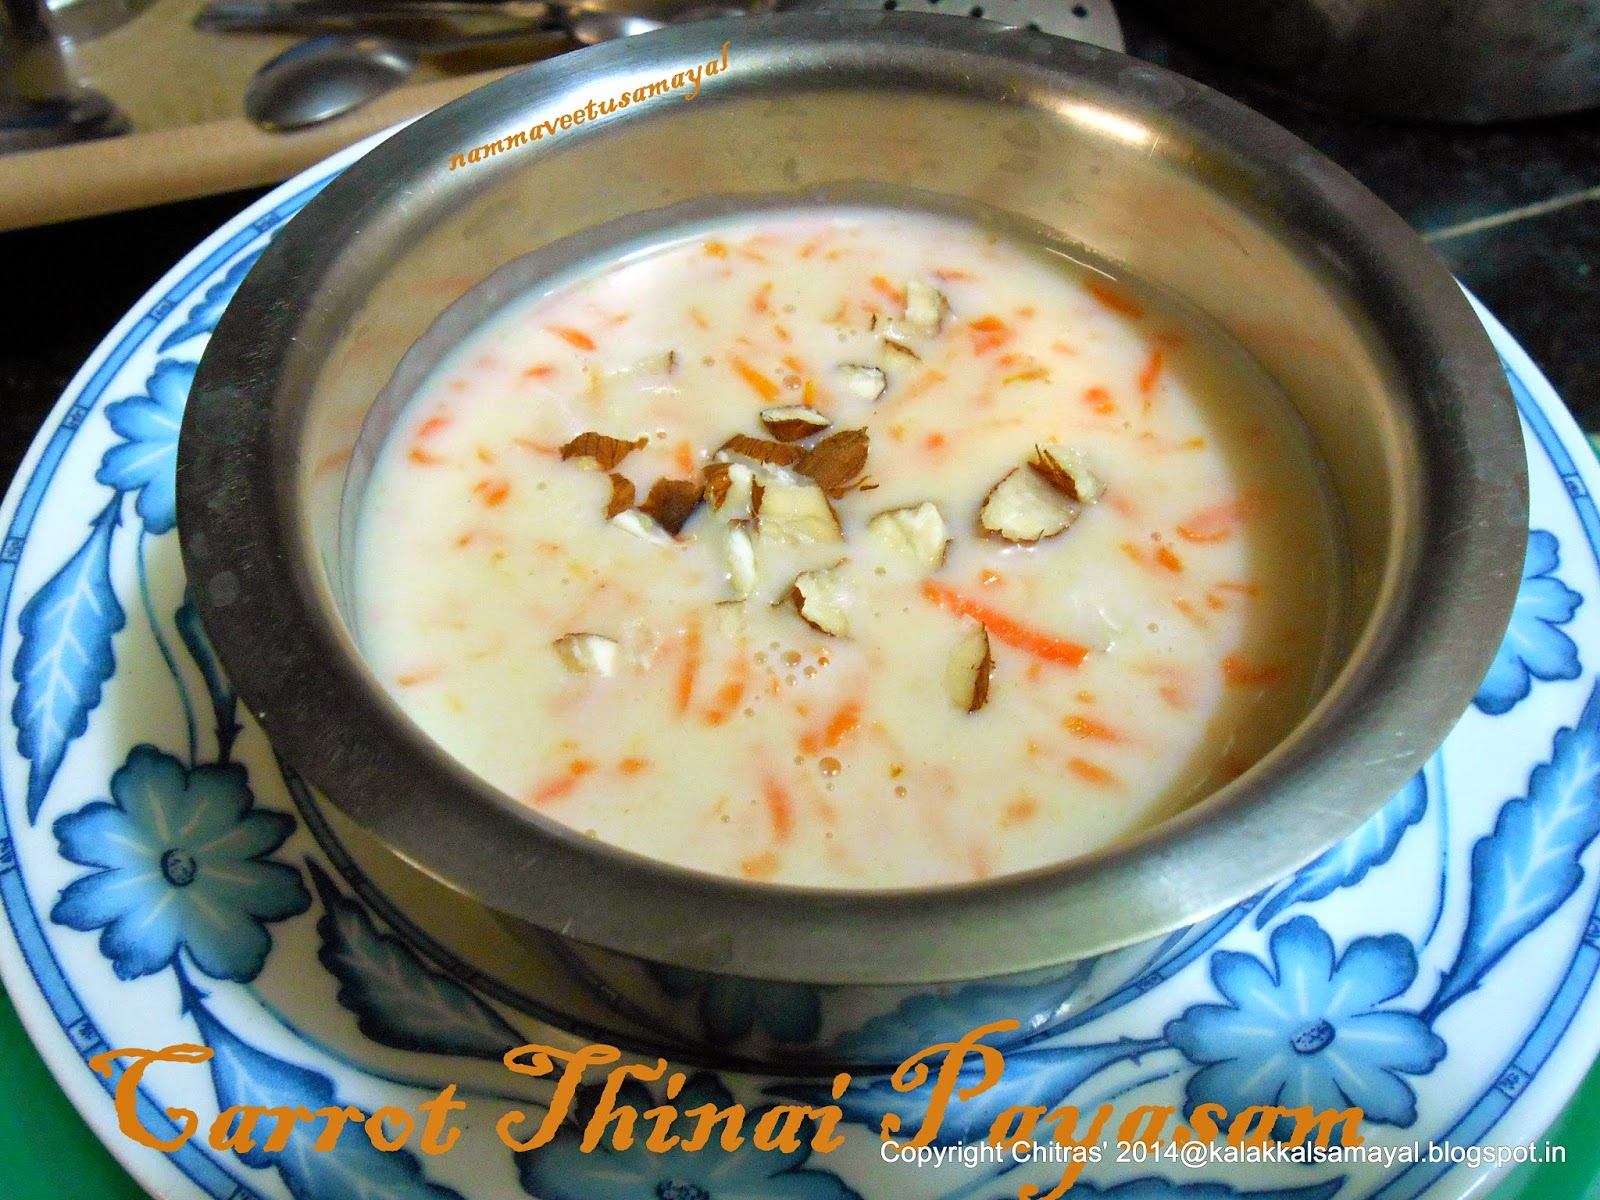 Carrot Thinai Payasam